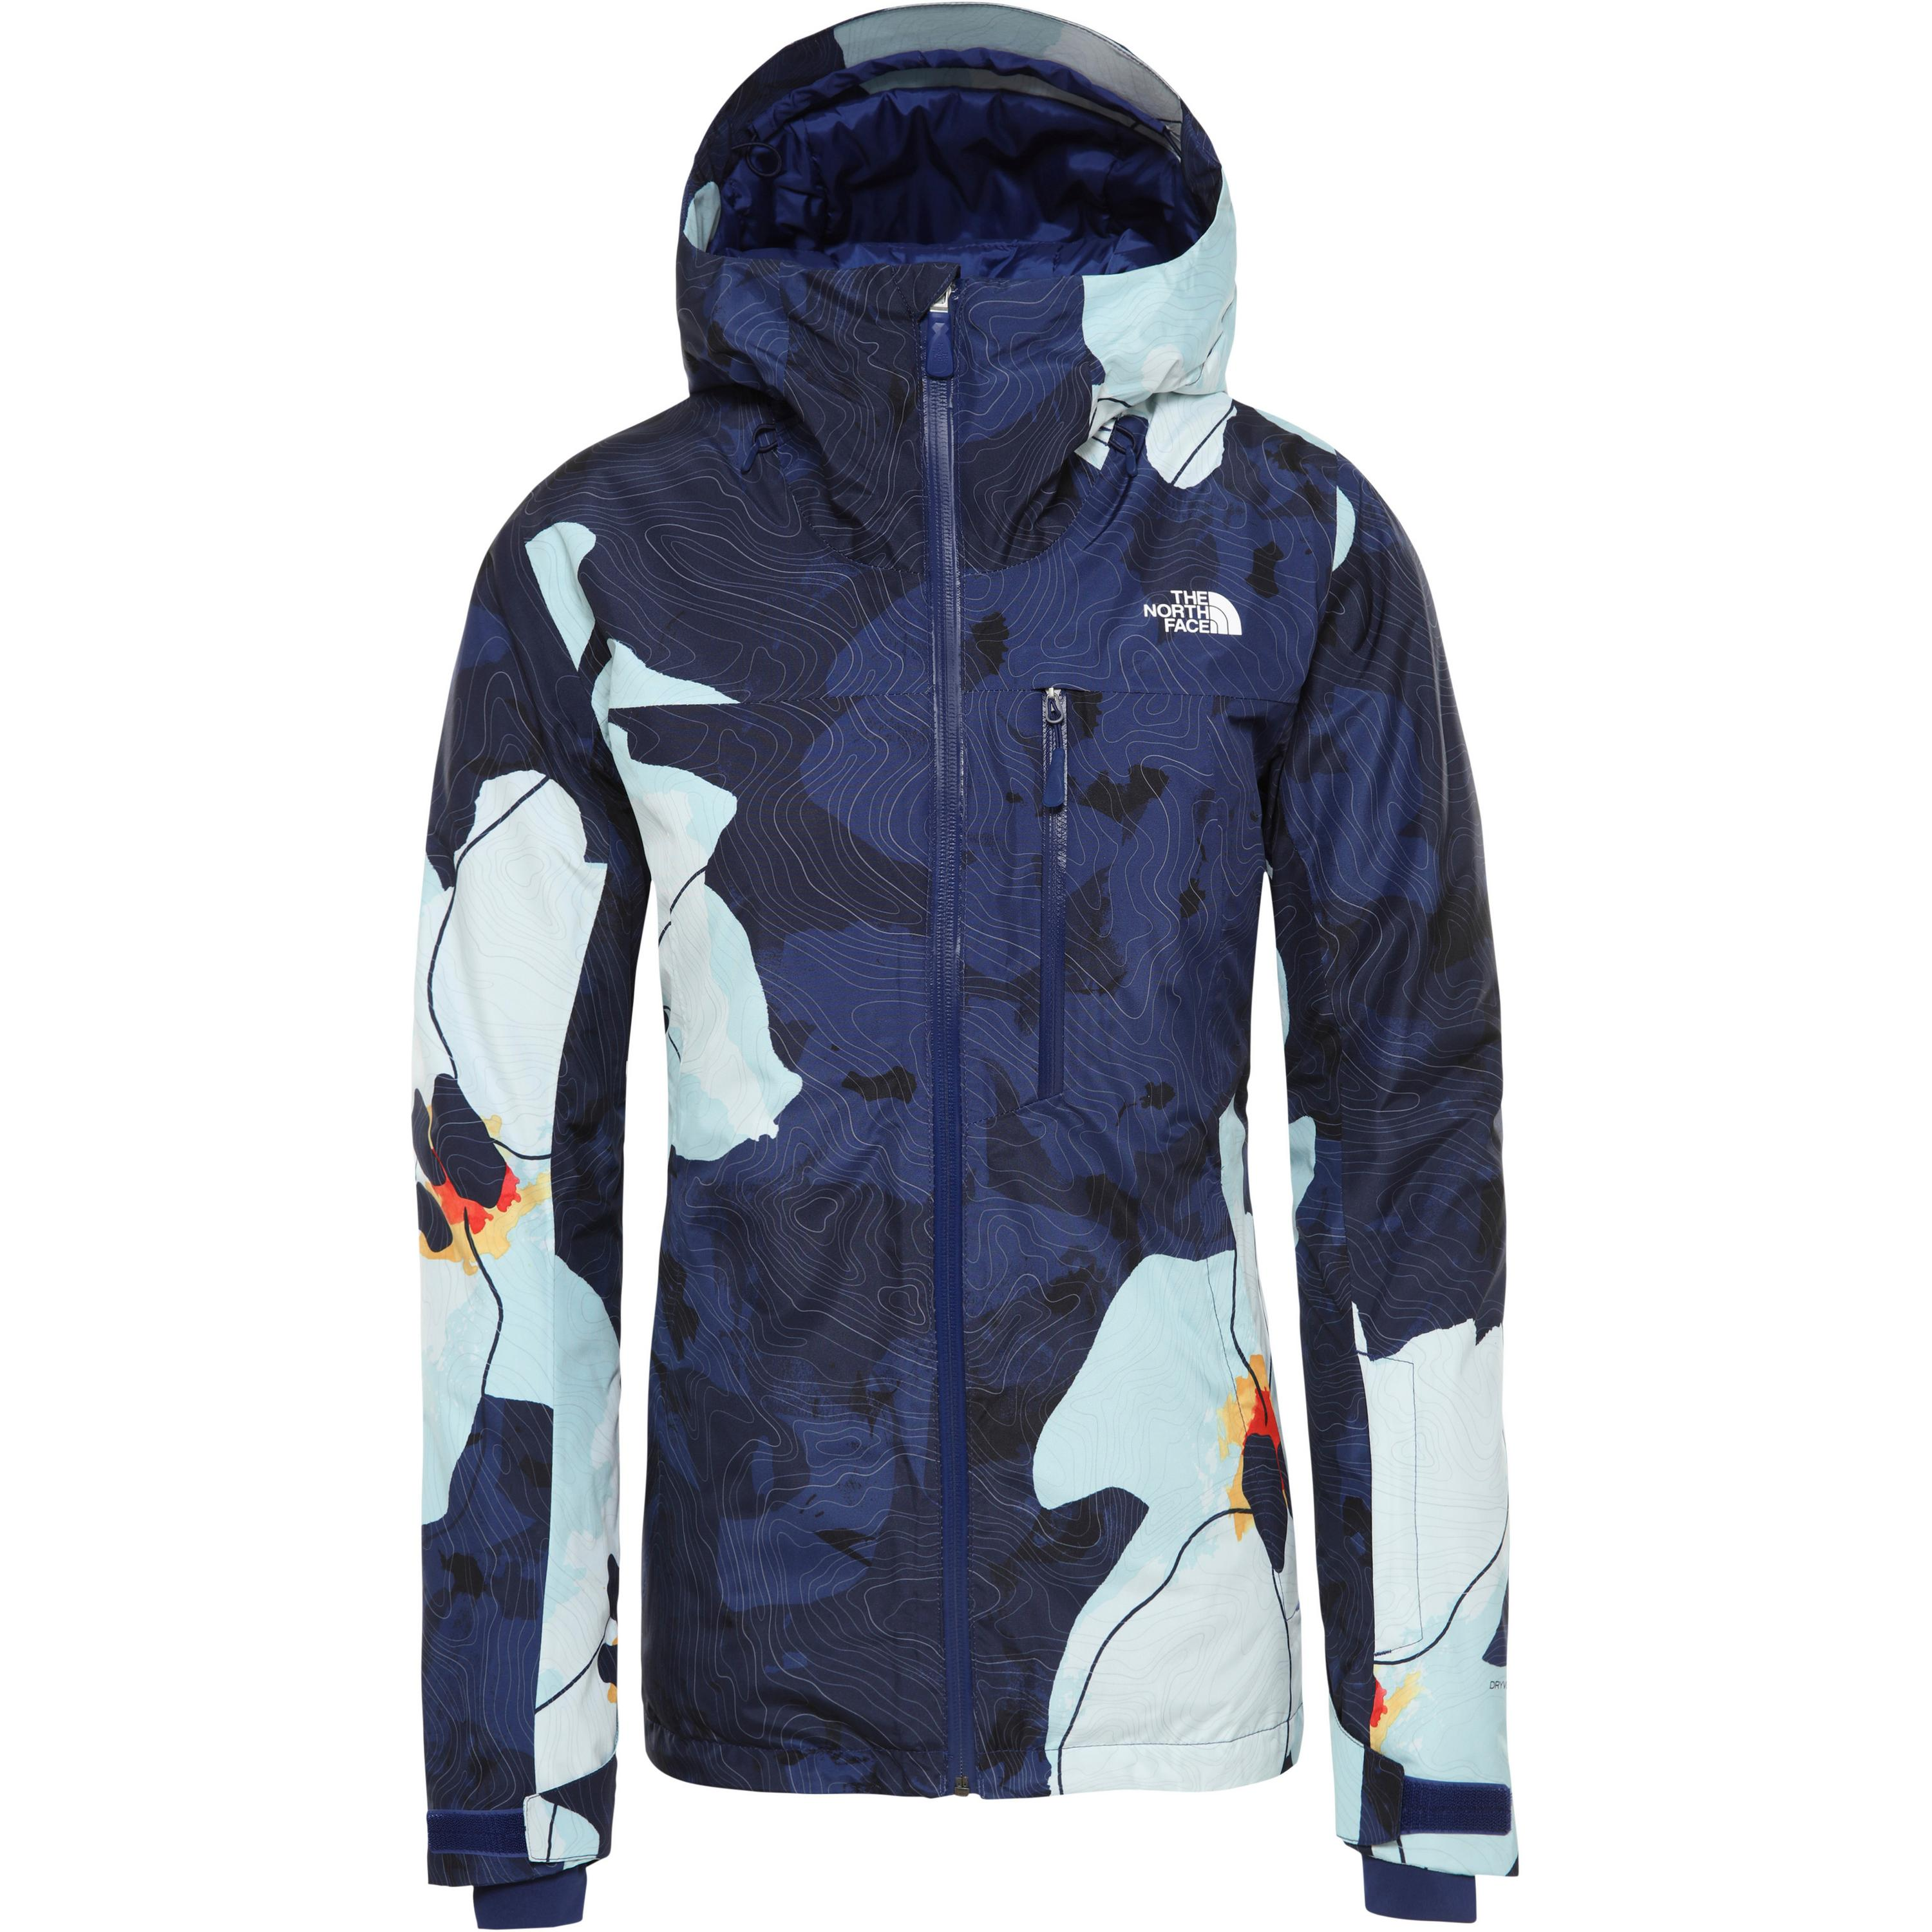 The North Face Descendit Skijacke Damen (blau)